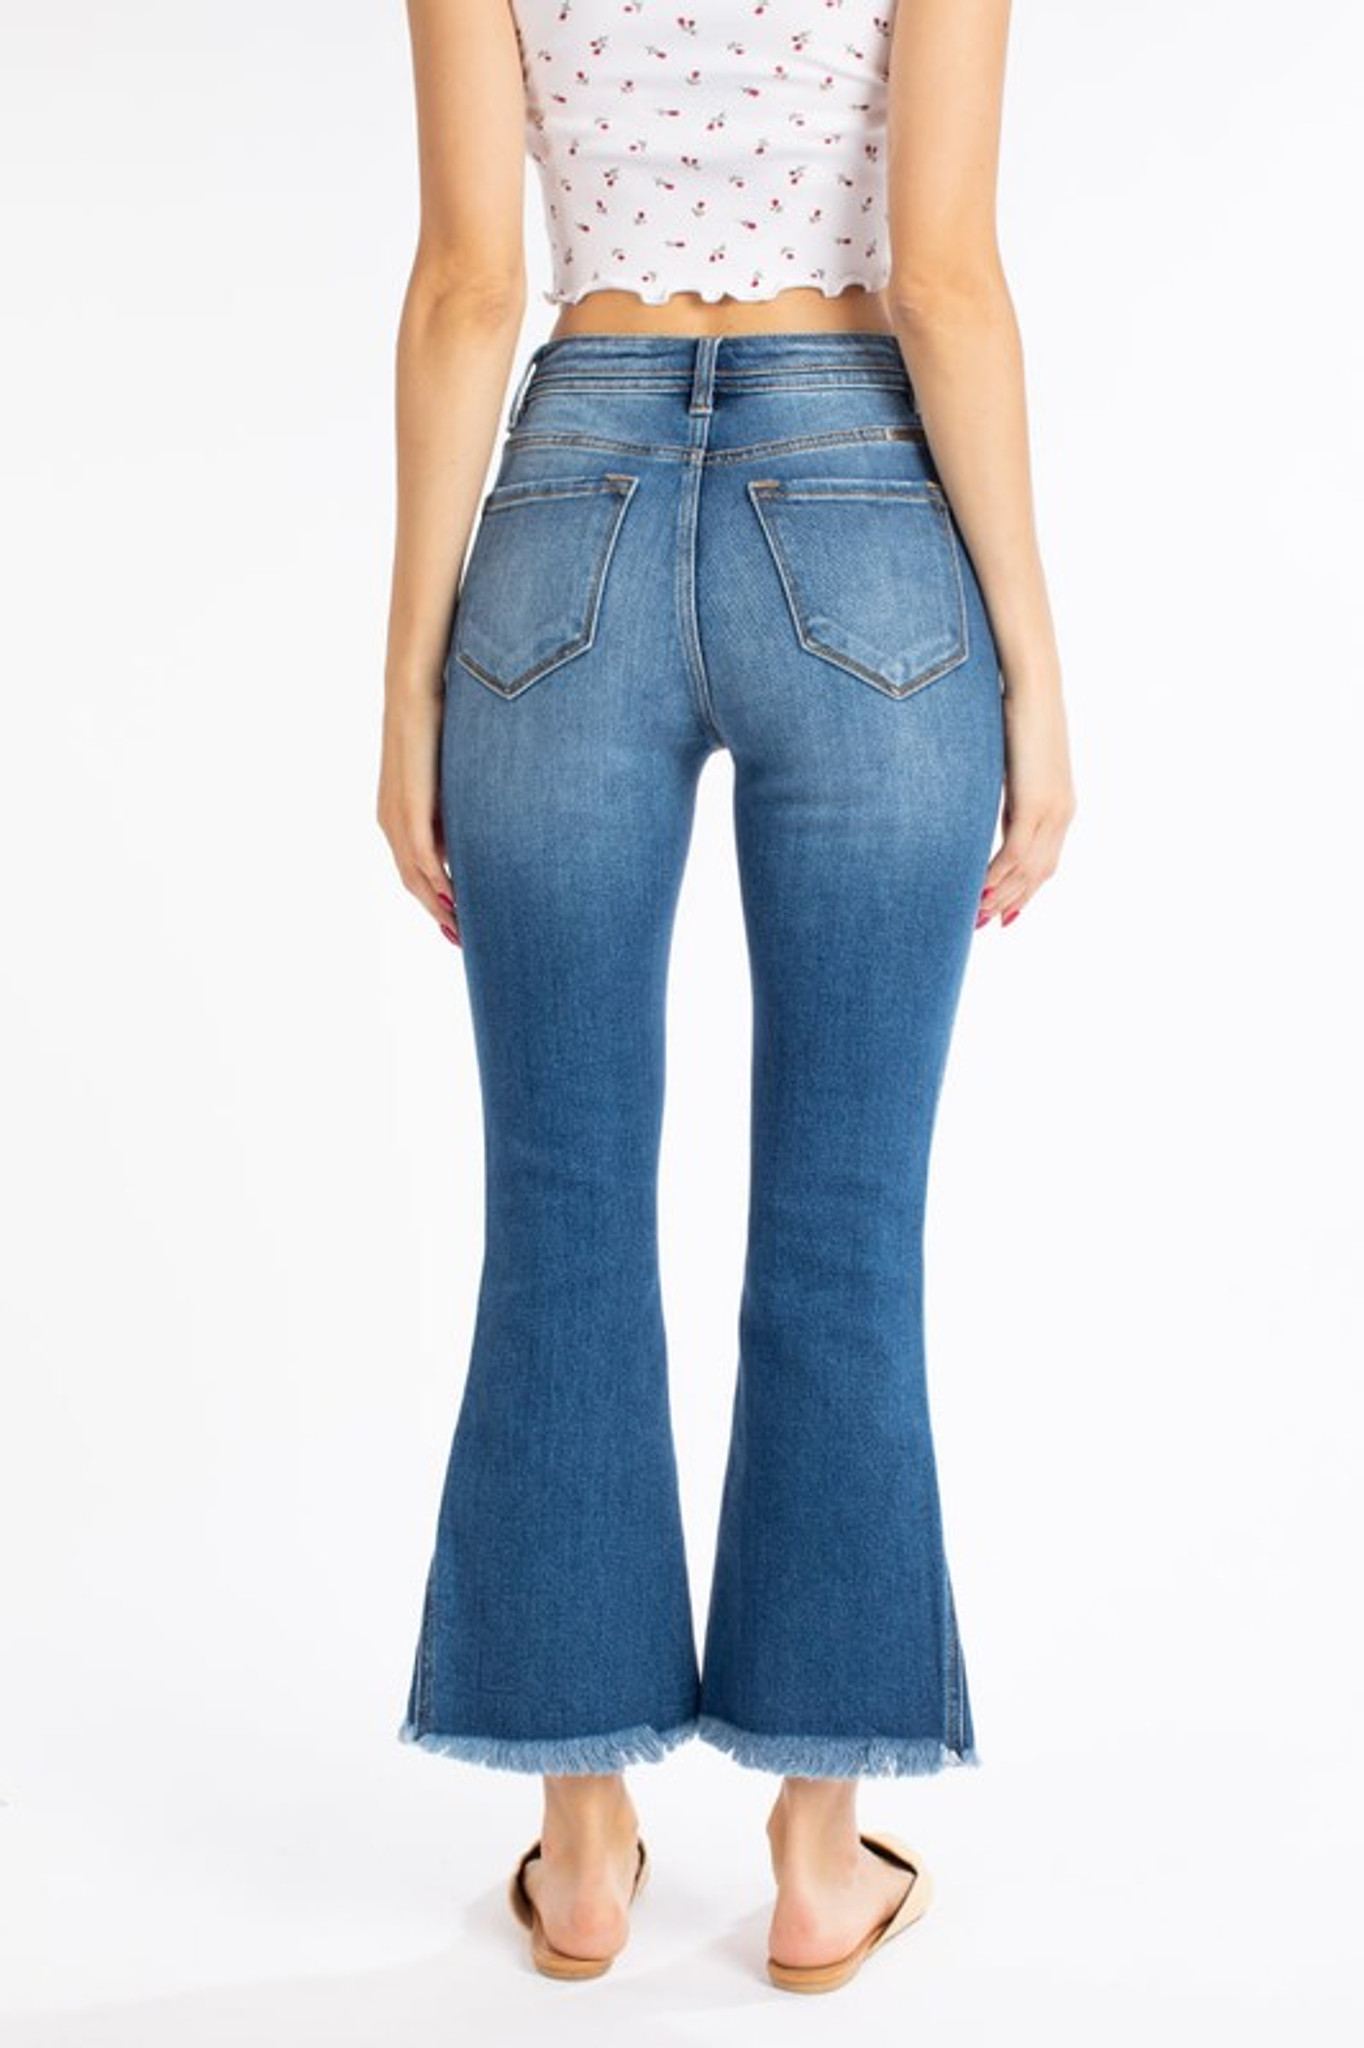 Women S Kancan Jeans High Rise Crop Flare 4 Buttons Raw Hem Chick Elms Grand Entry Western Store And Rodeo Shop